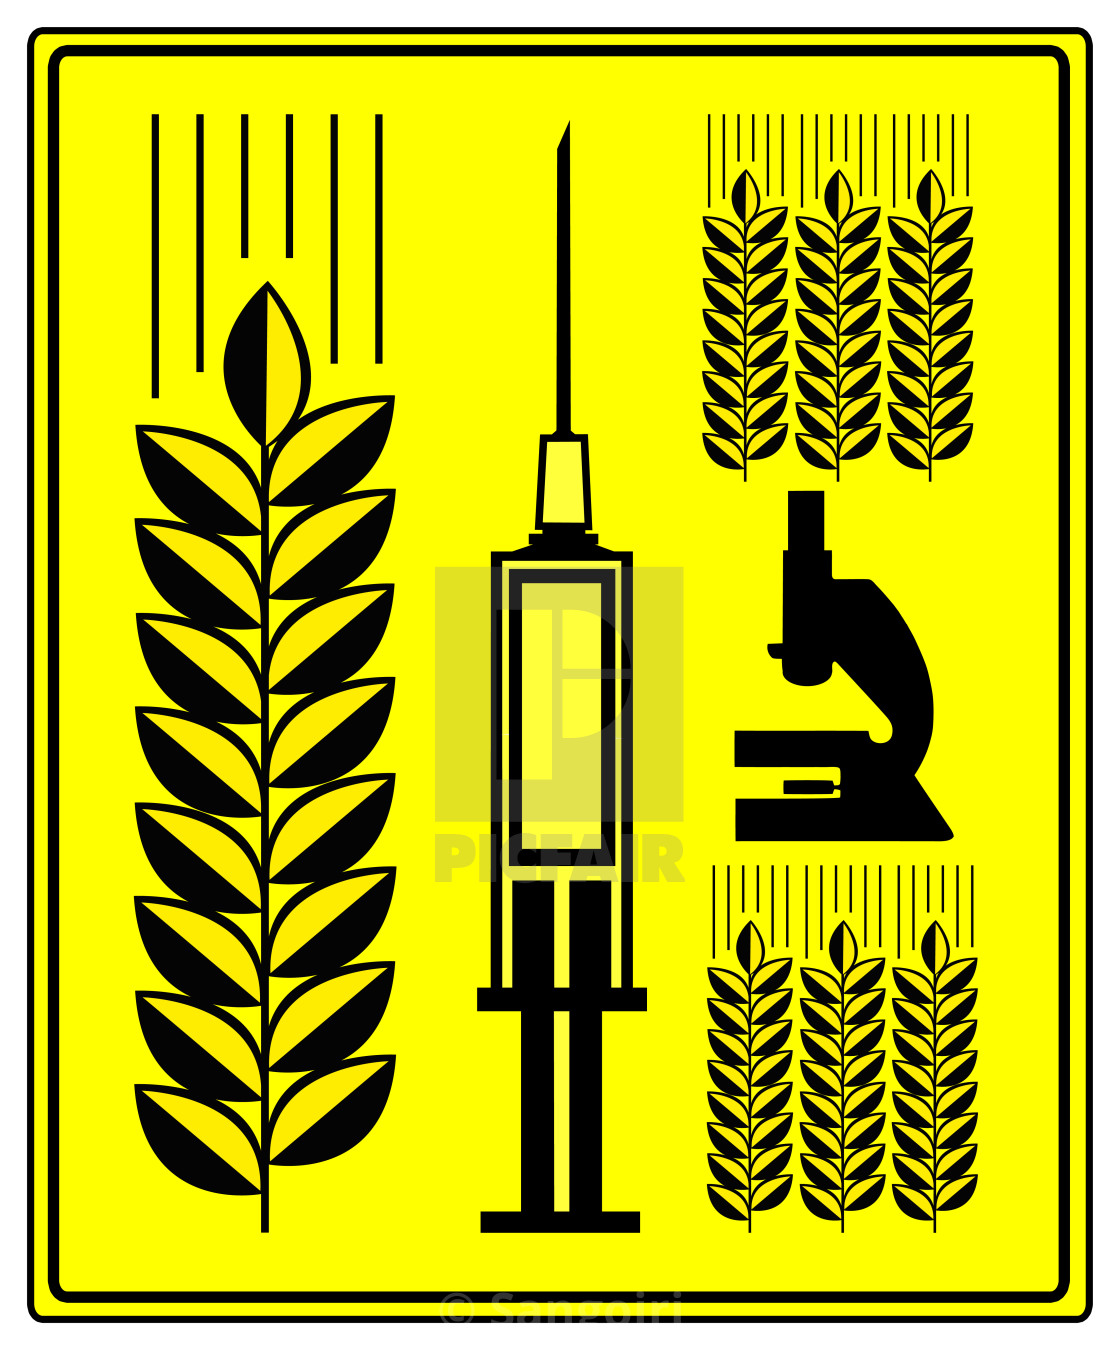 Genetically Modified Wheat - License, download or print for